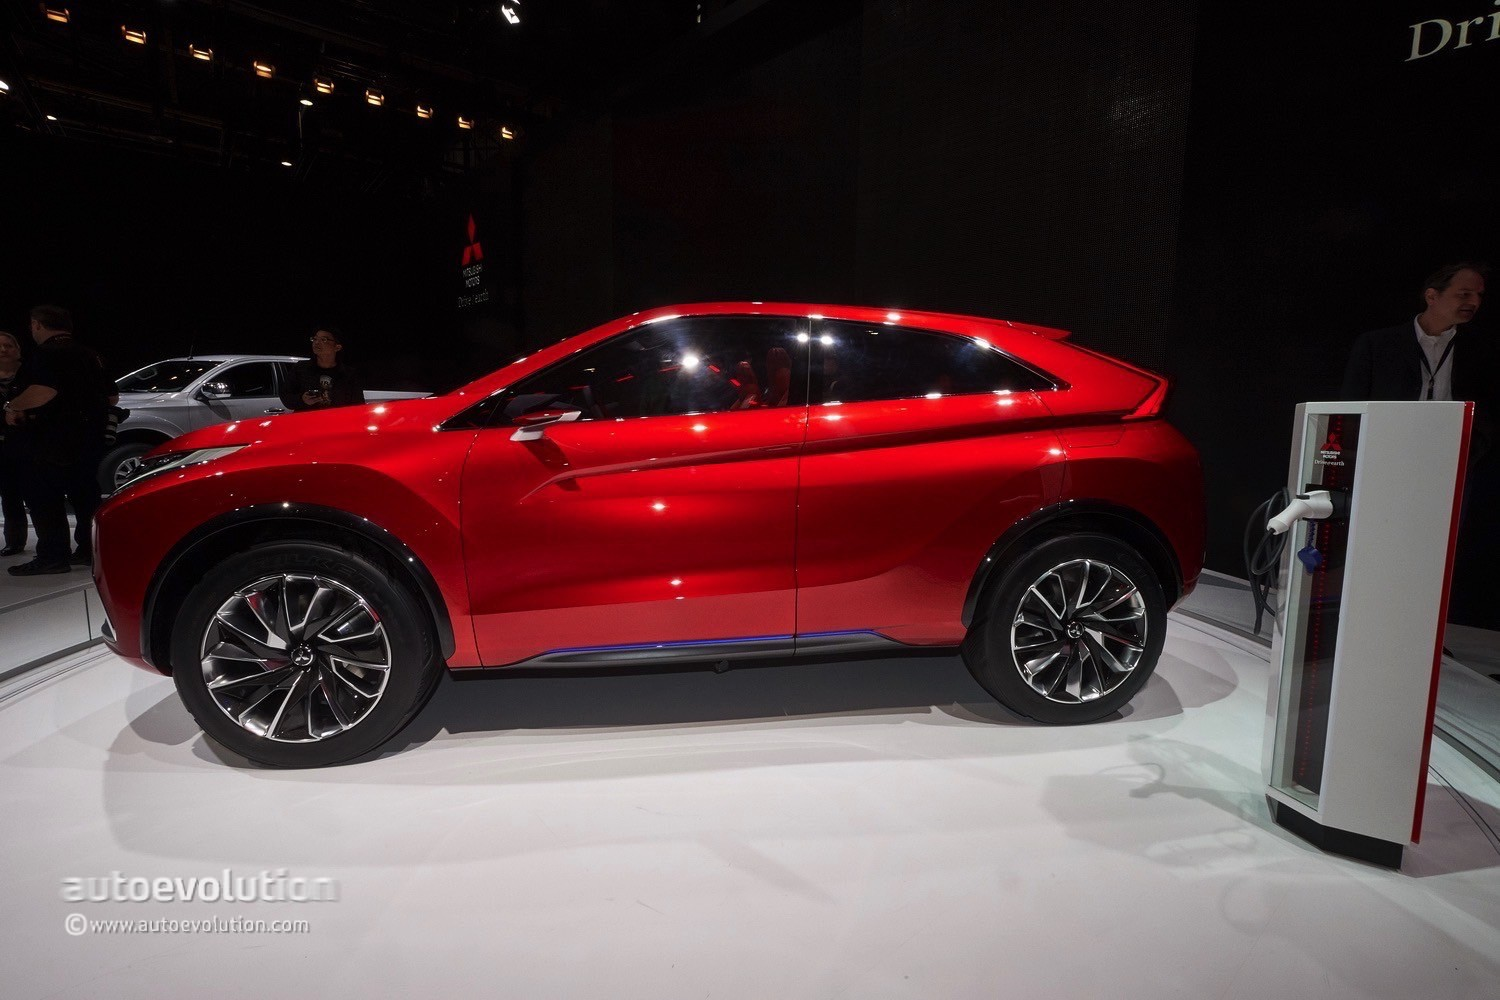 Mitsubishi Confirms Cuv Coupe For 2017 Will Slot Above